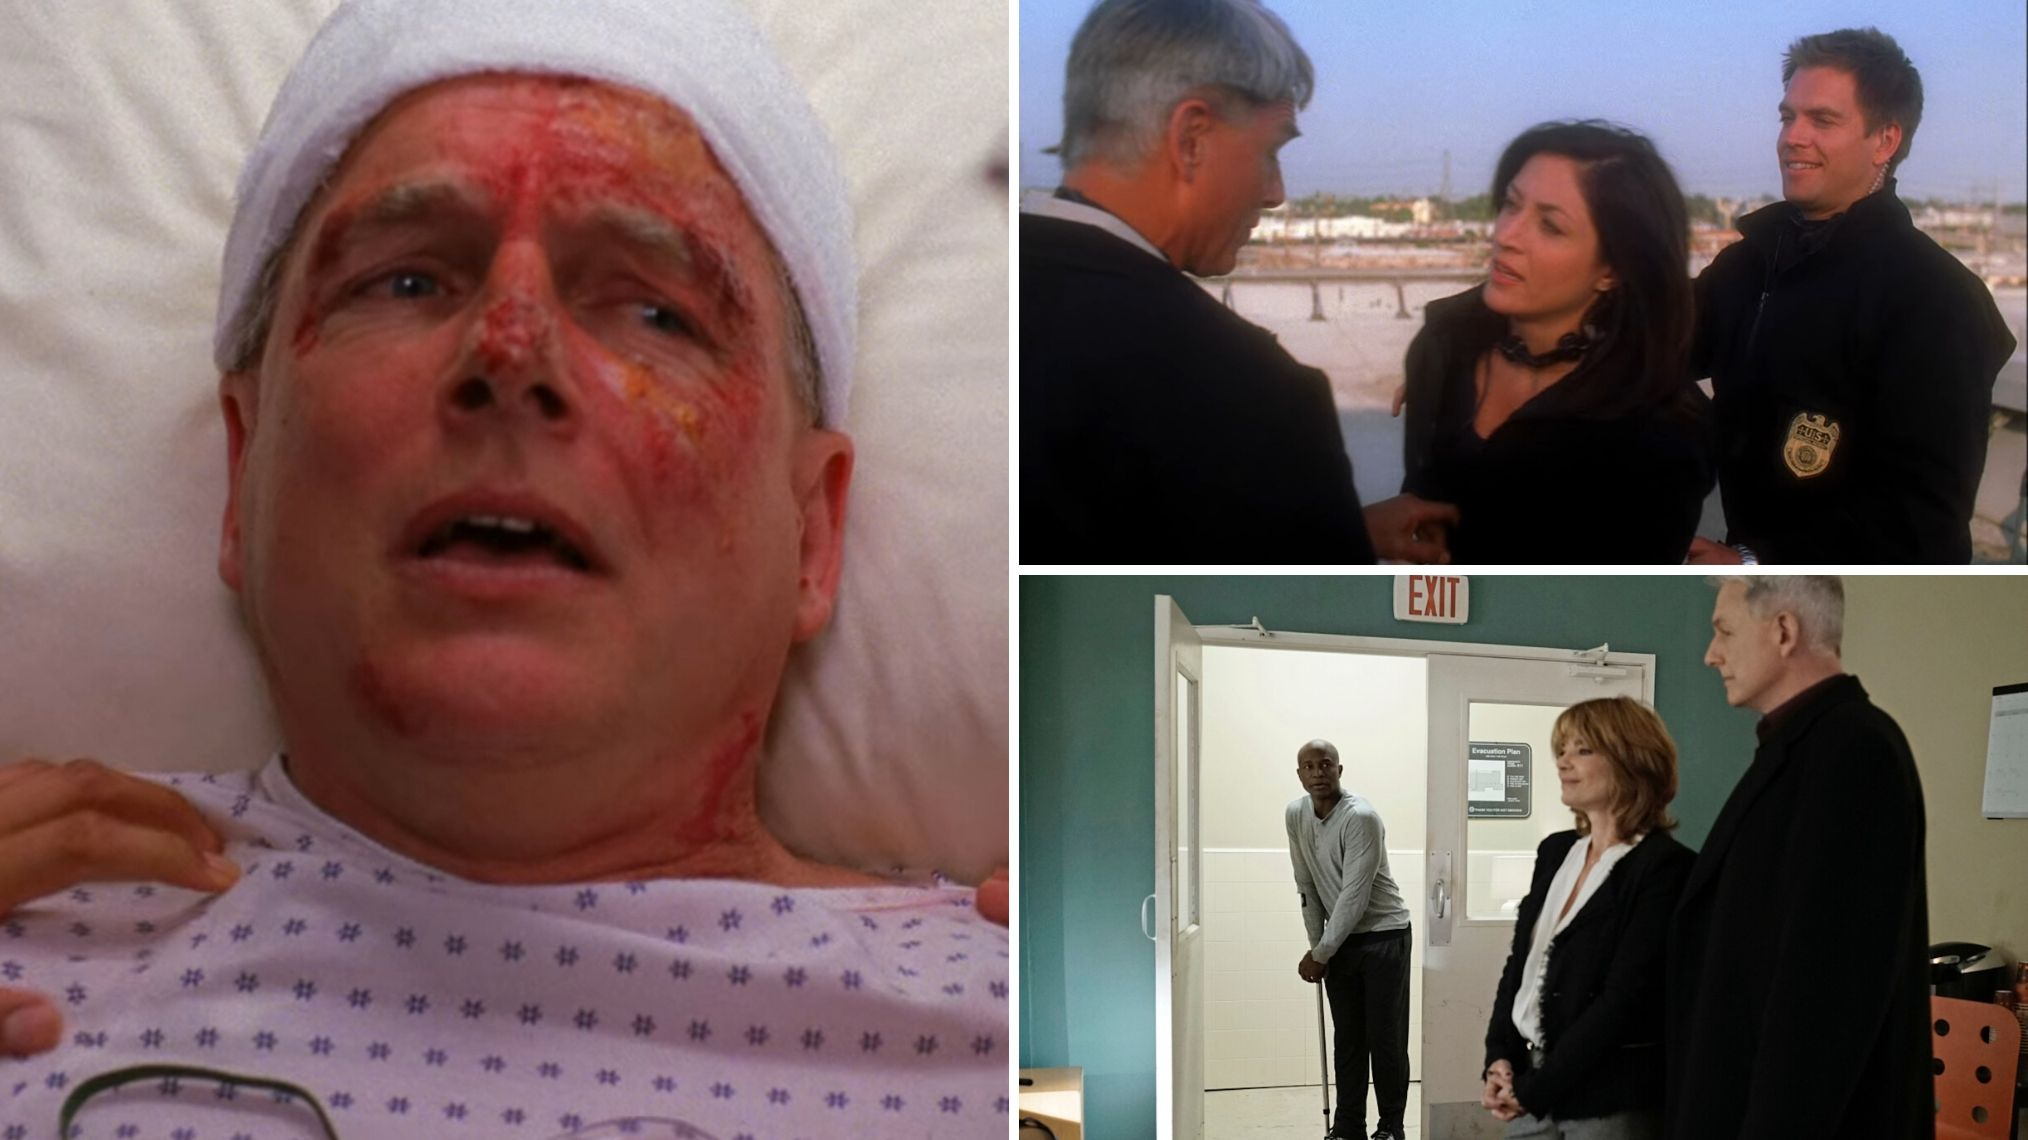 10 Heartbreaking Powerful Ncis Episodes That Left An Impression